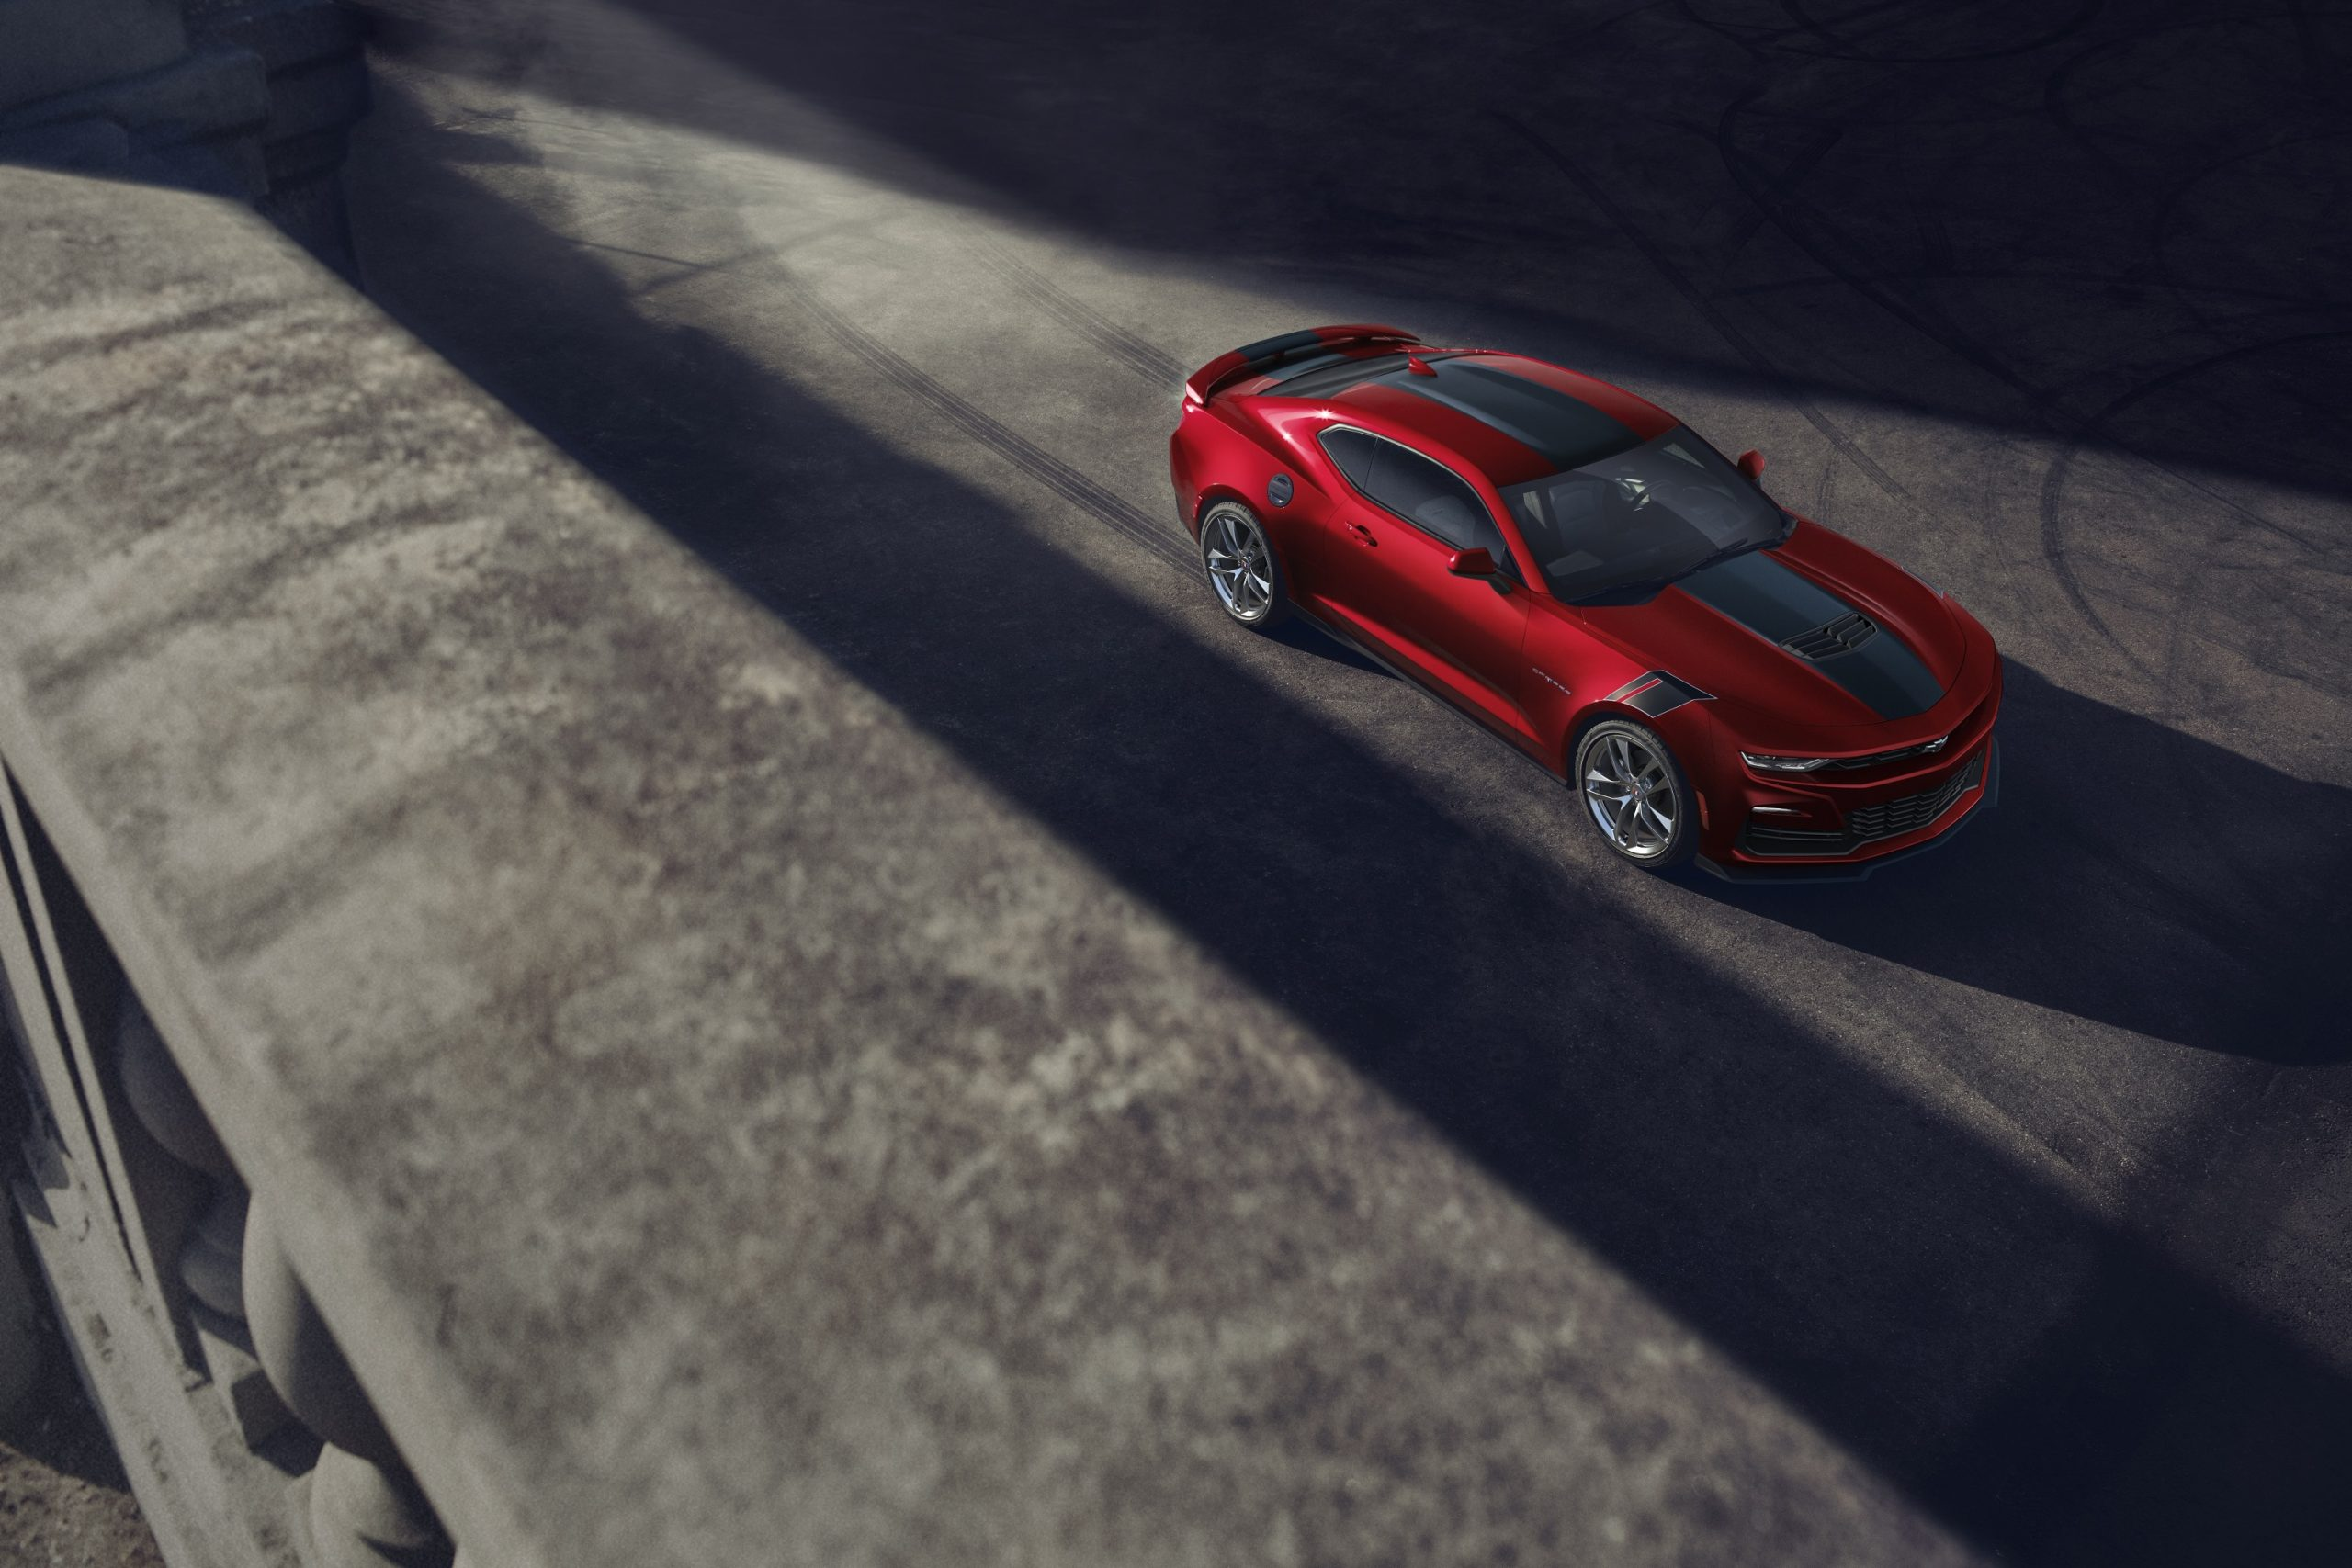 The 2021 Chevrolet Camaro shot from the high 3/4 angle in a warehouse